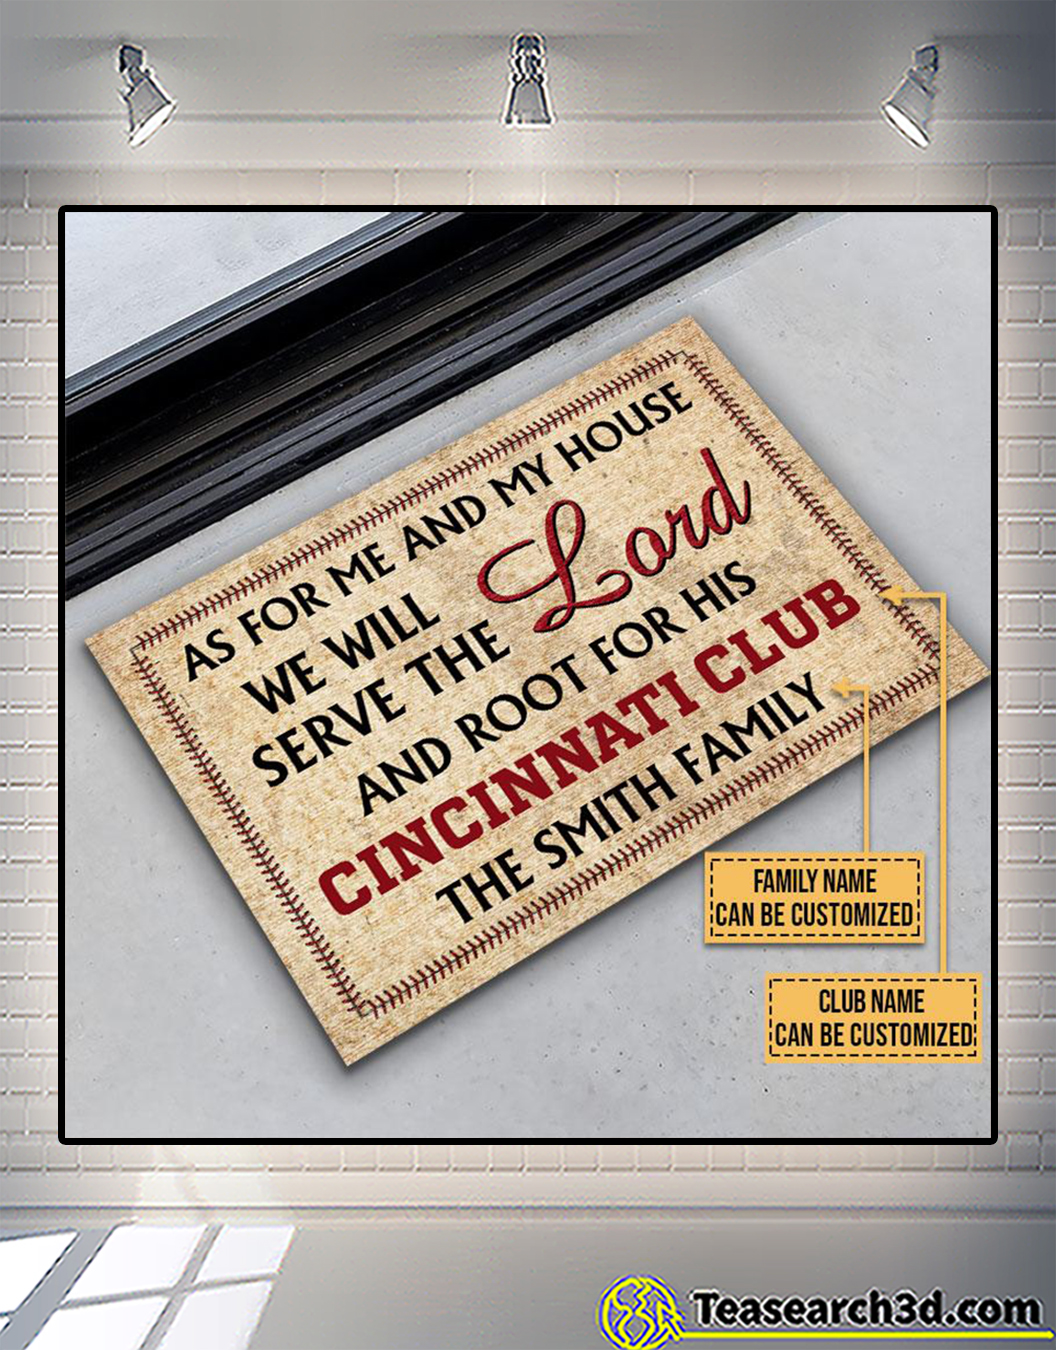 Personalized baseball as for me and my house we will serve the lord doormat 2